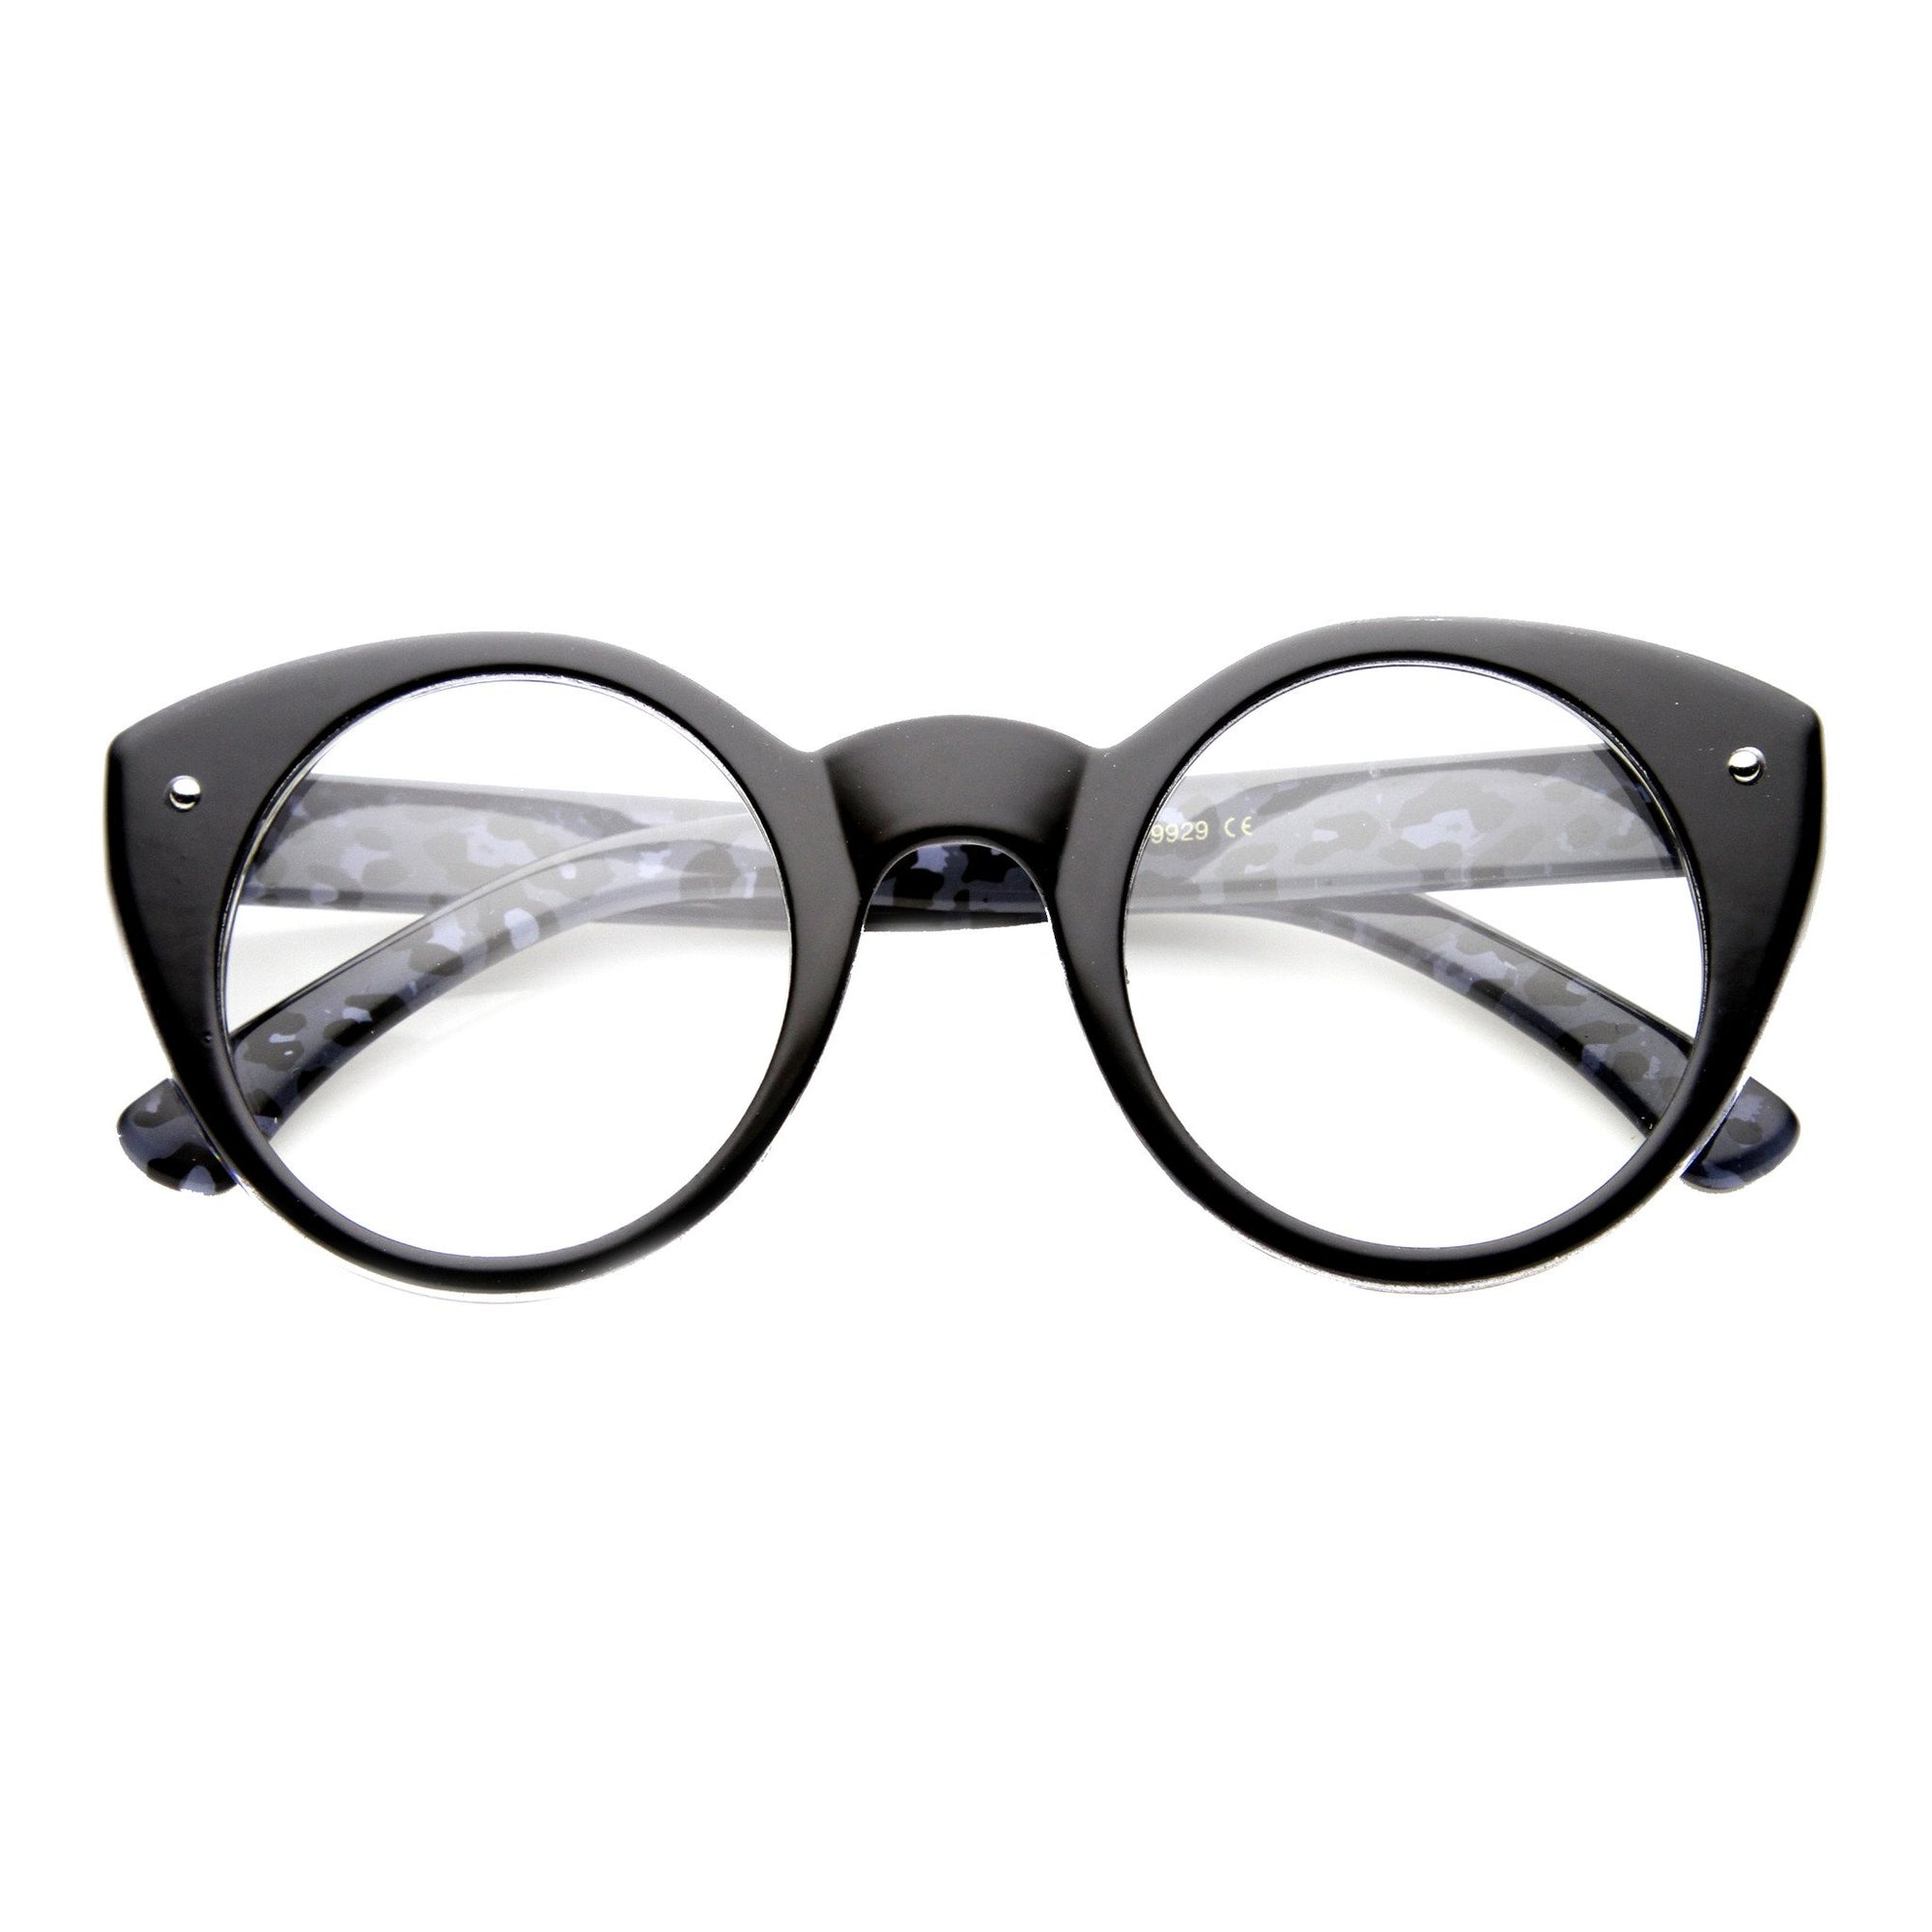 bdf92087a65c Cute Retro Animal Print Round Cat Eye Clear Lens Glasses 9647 - zeroUV